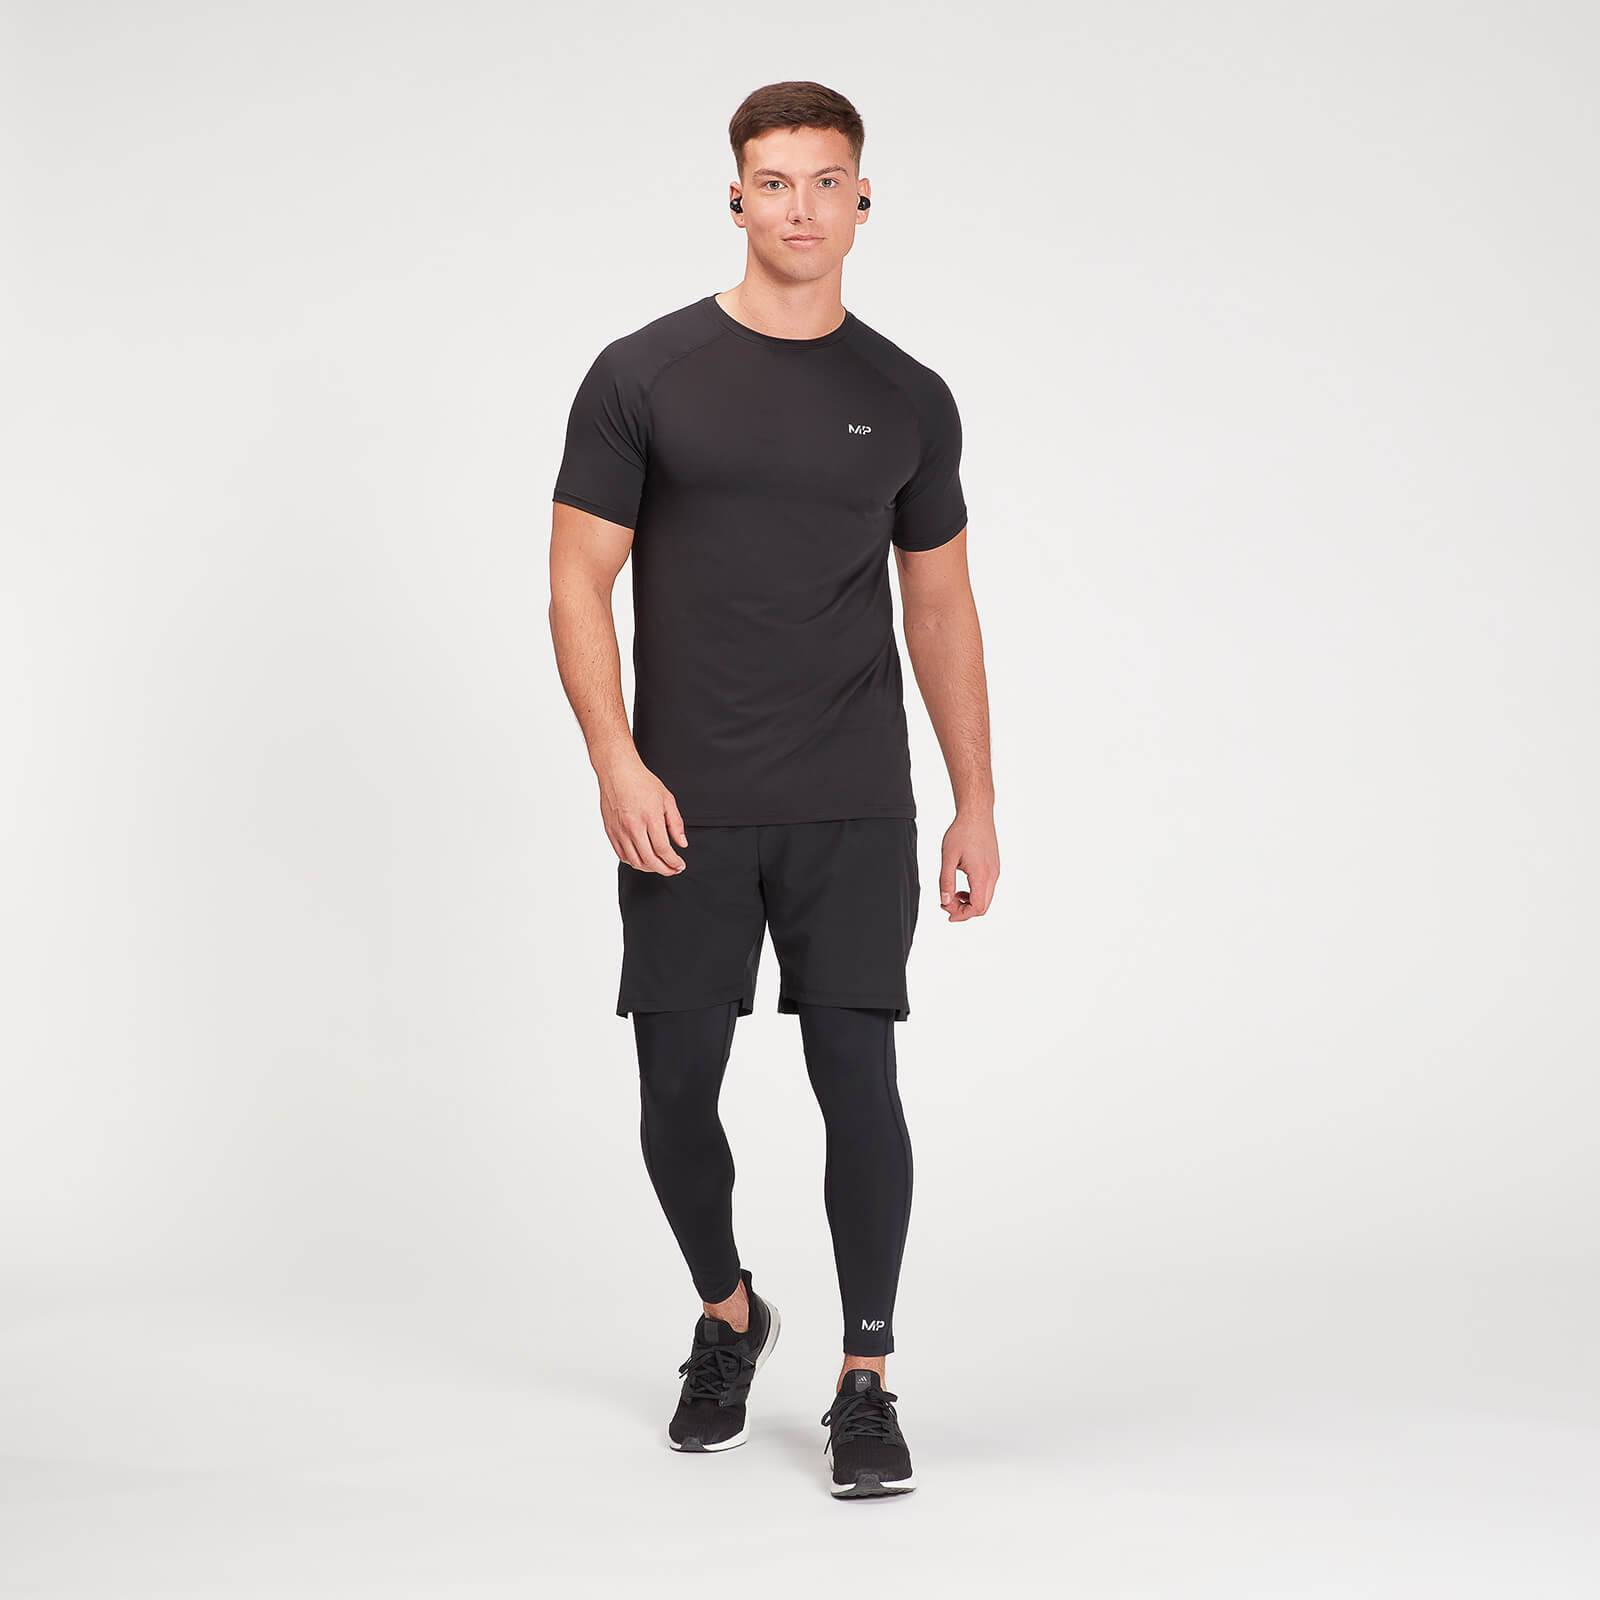 Mp Leggings sportivi attillati  Essentials Base da uomo - Neri - XXL